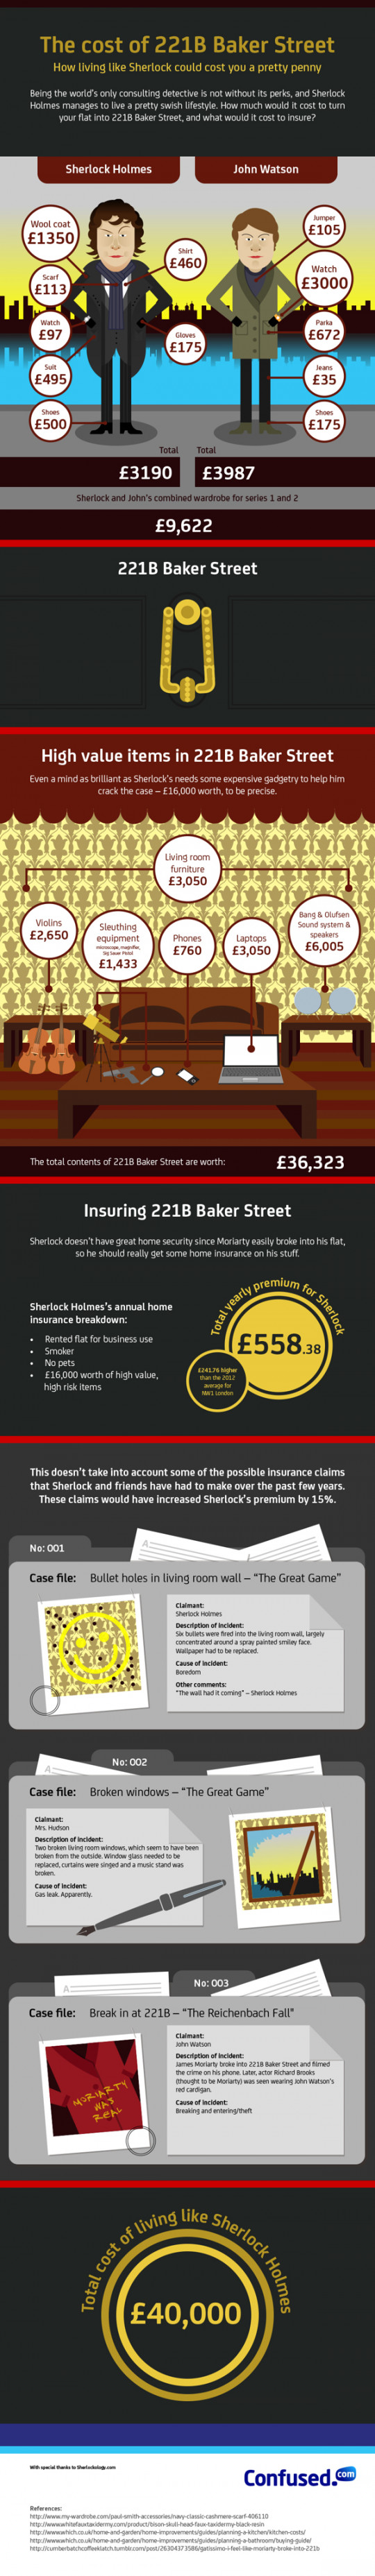 The Cost of 221B Baker Street